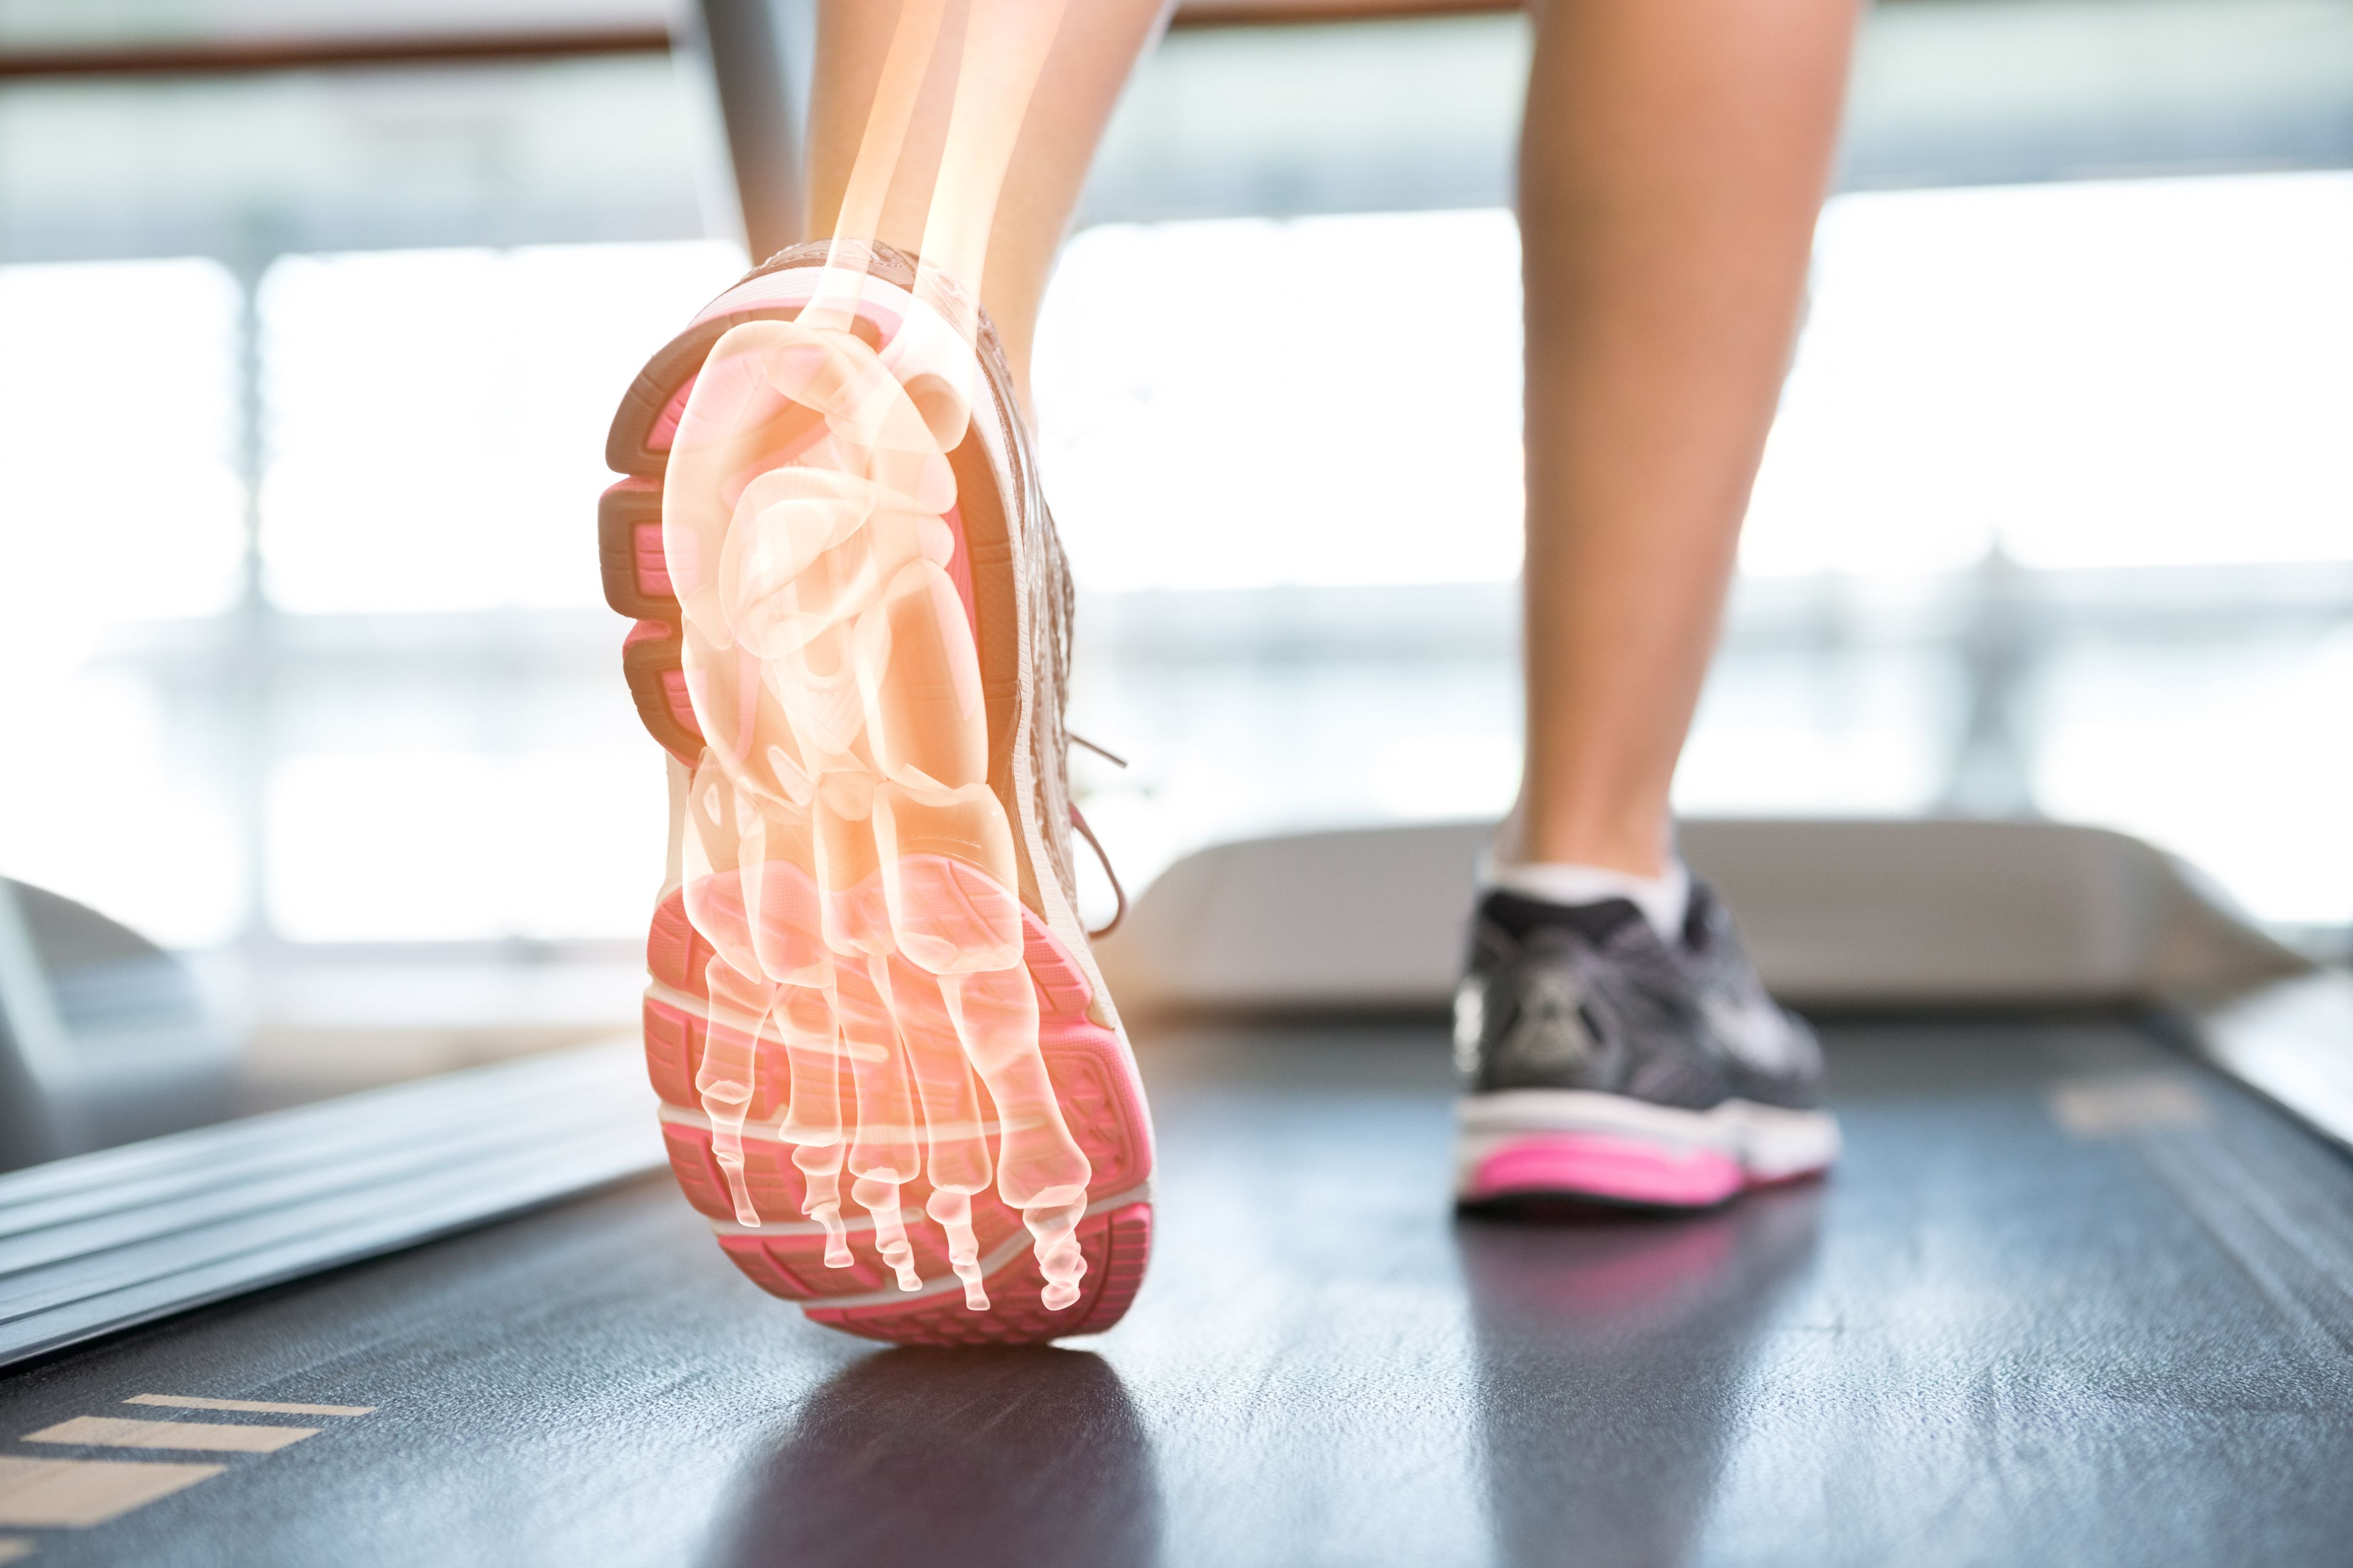 Highlighted foot of woman on treadmill